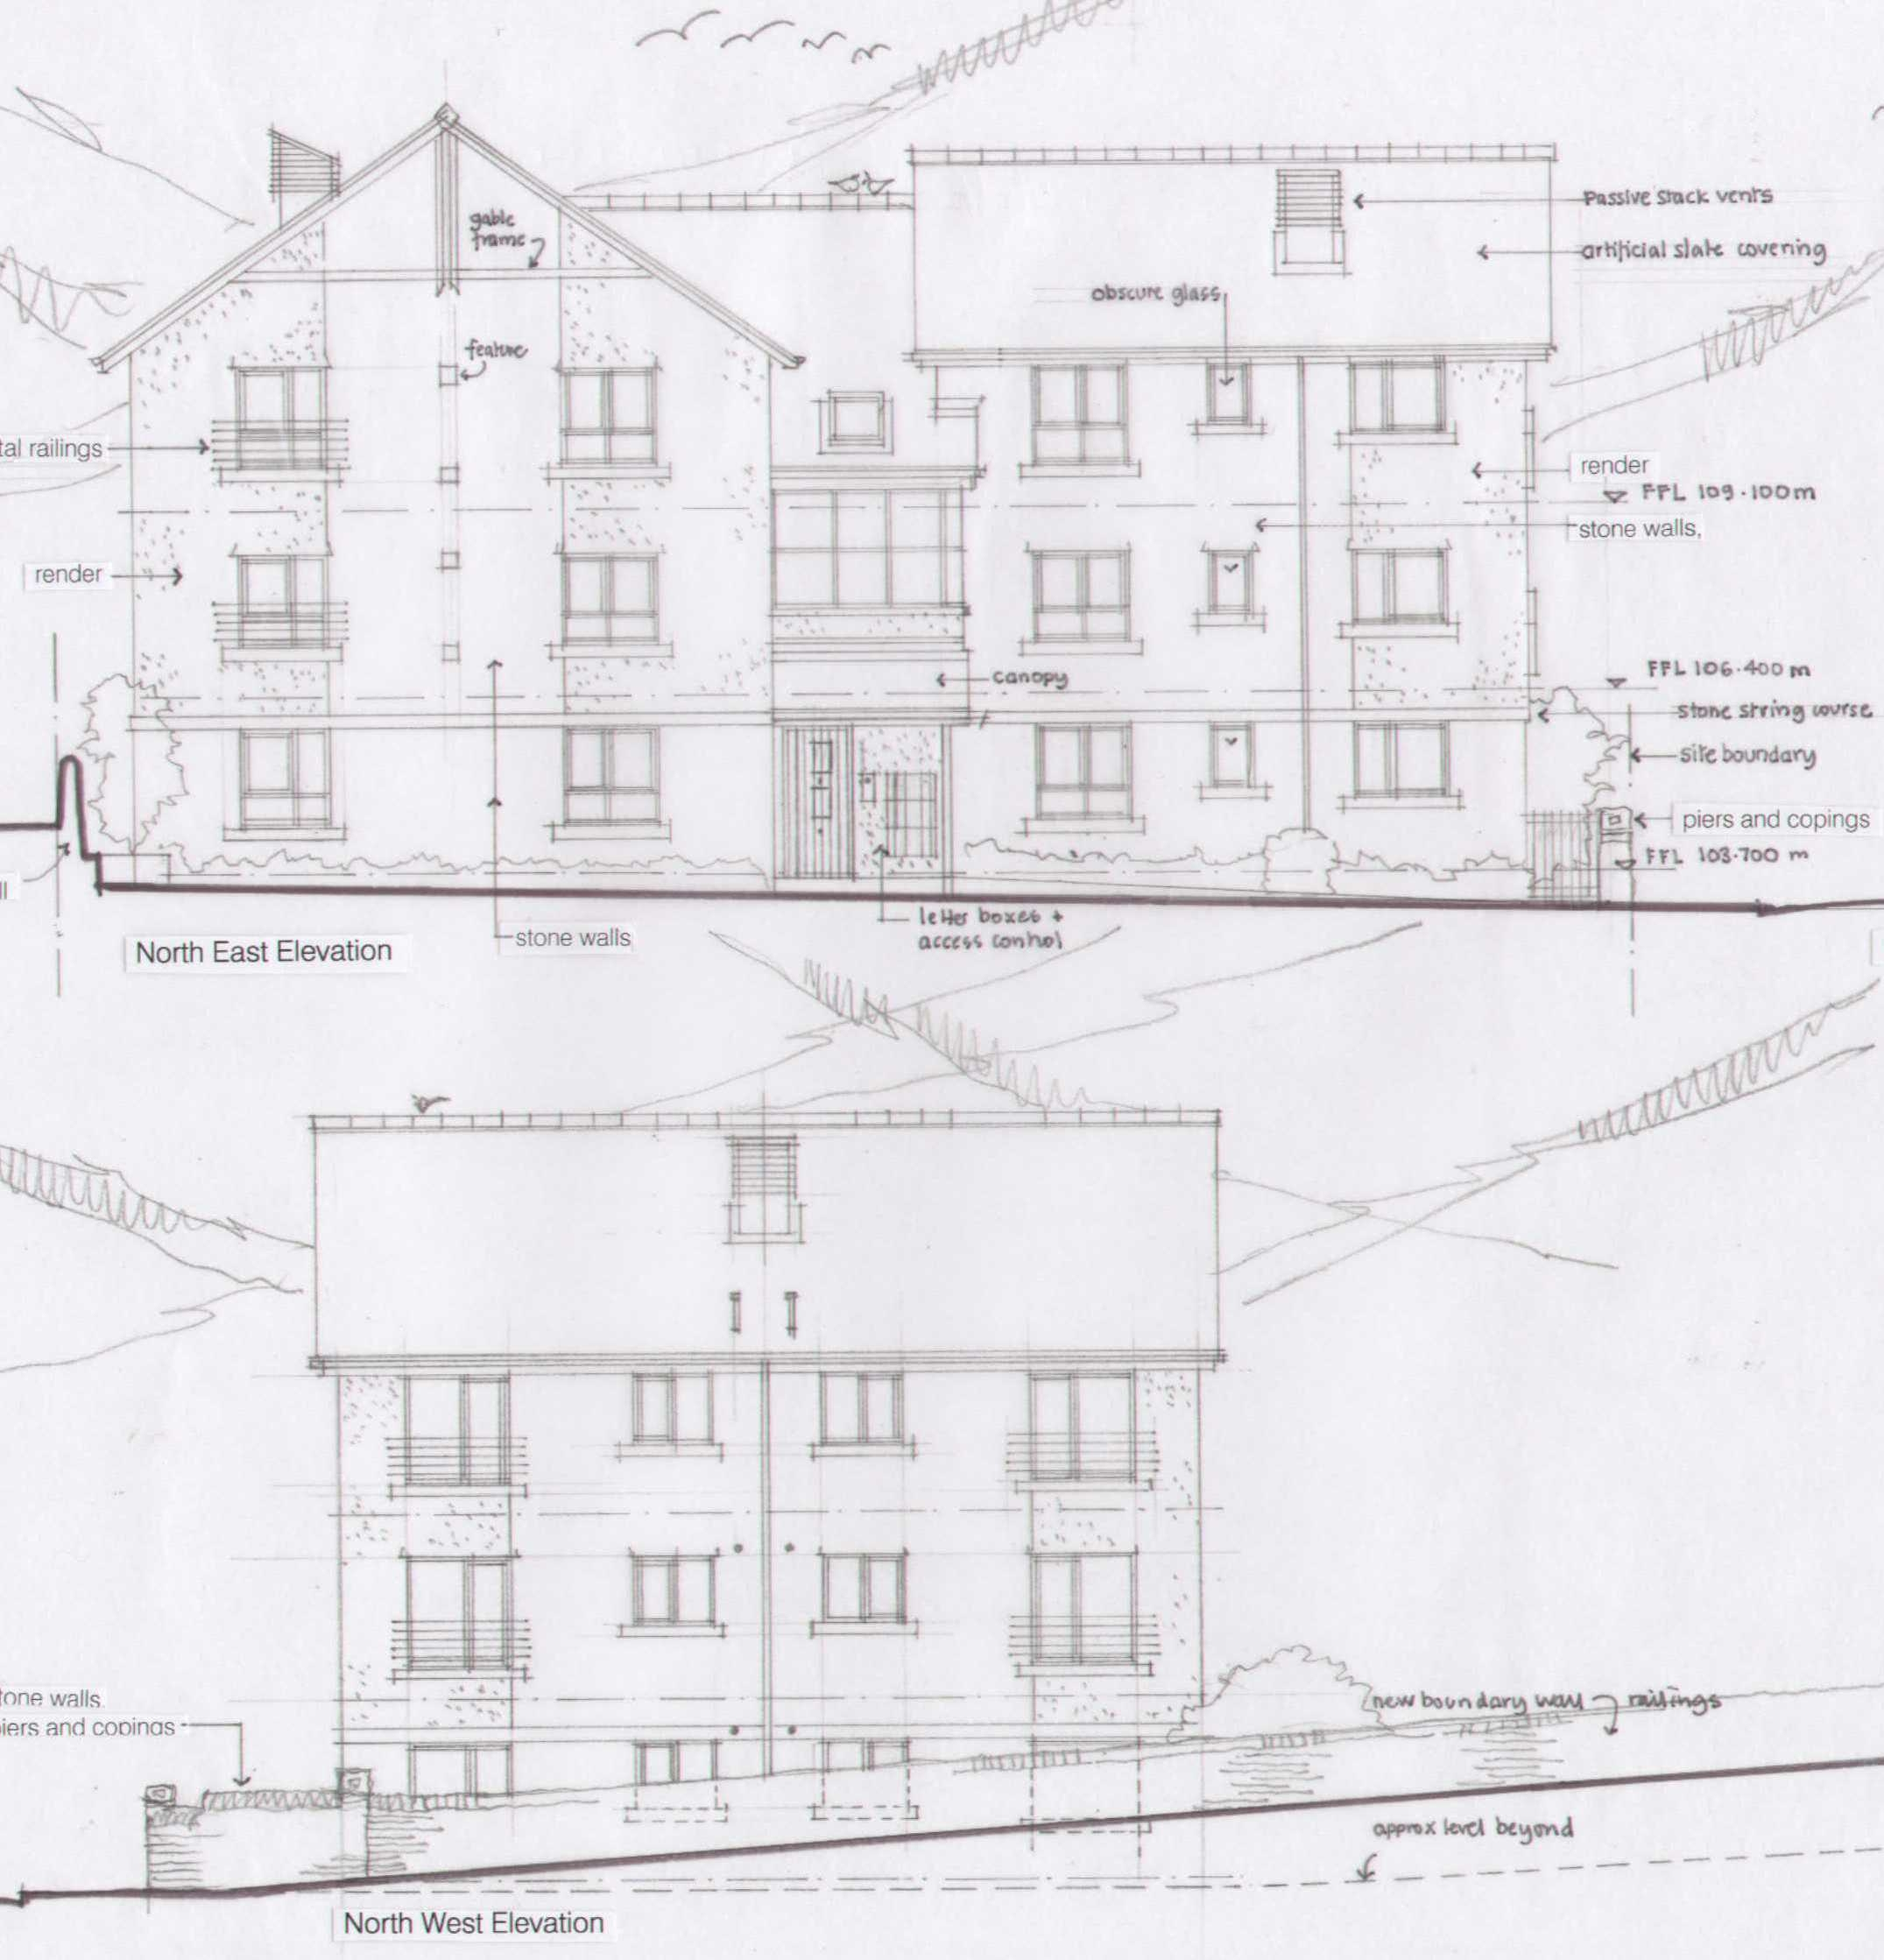 developing-a-derelict-pub-into-houses-and-flats